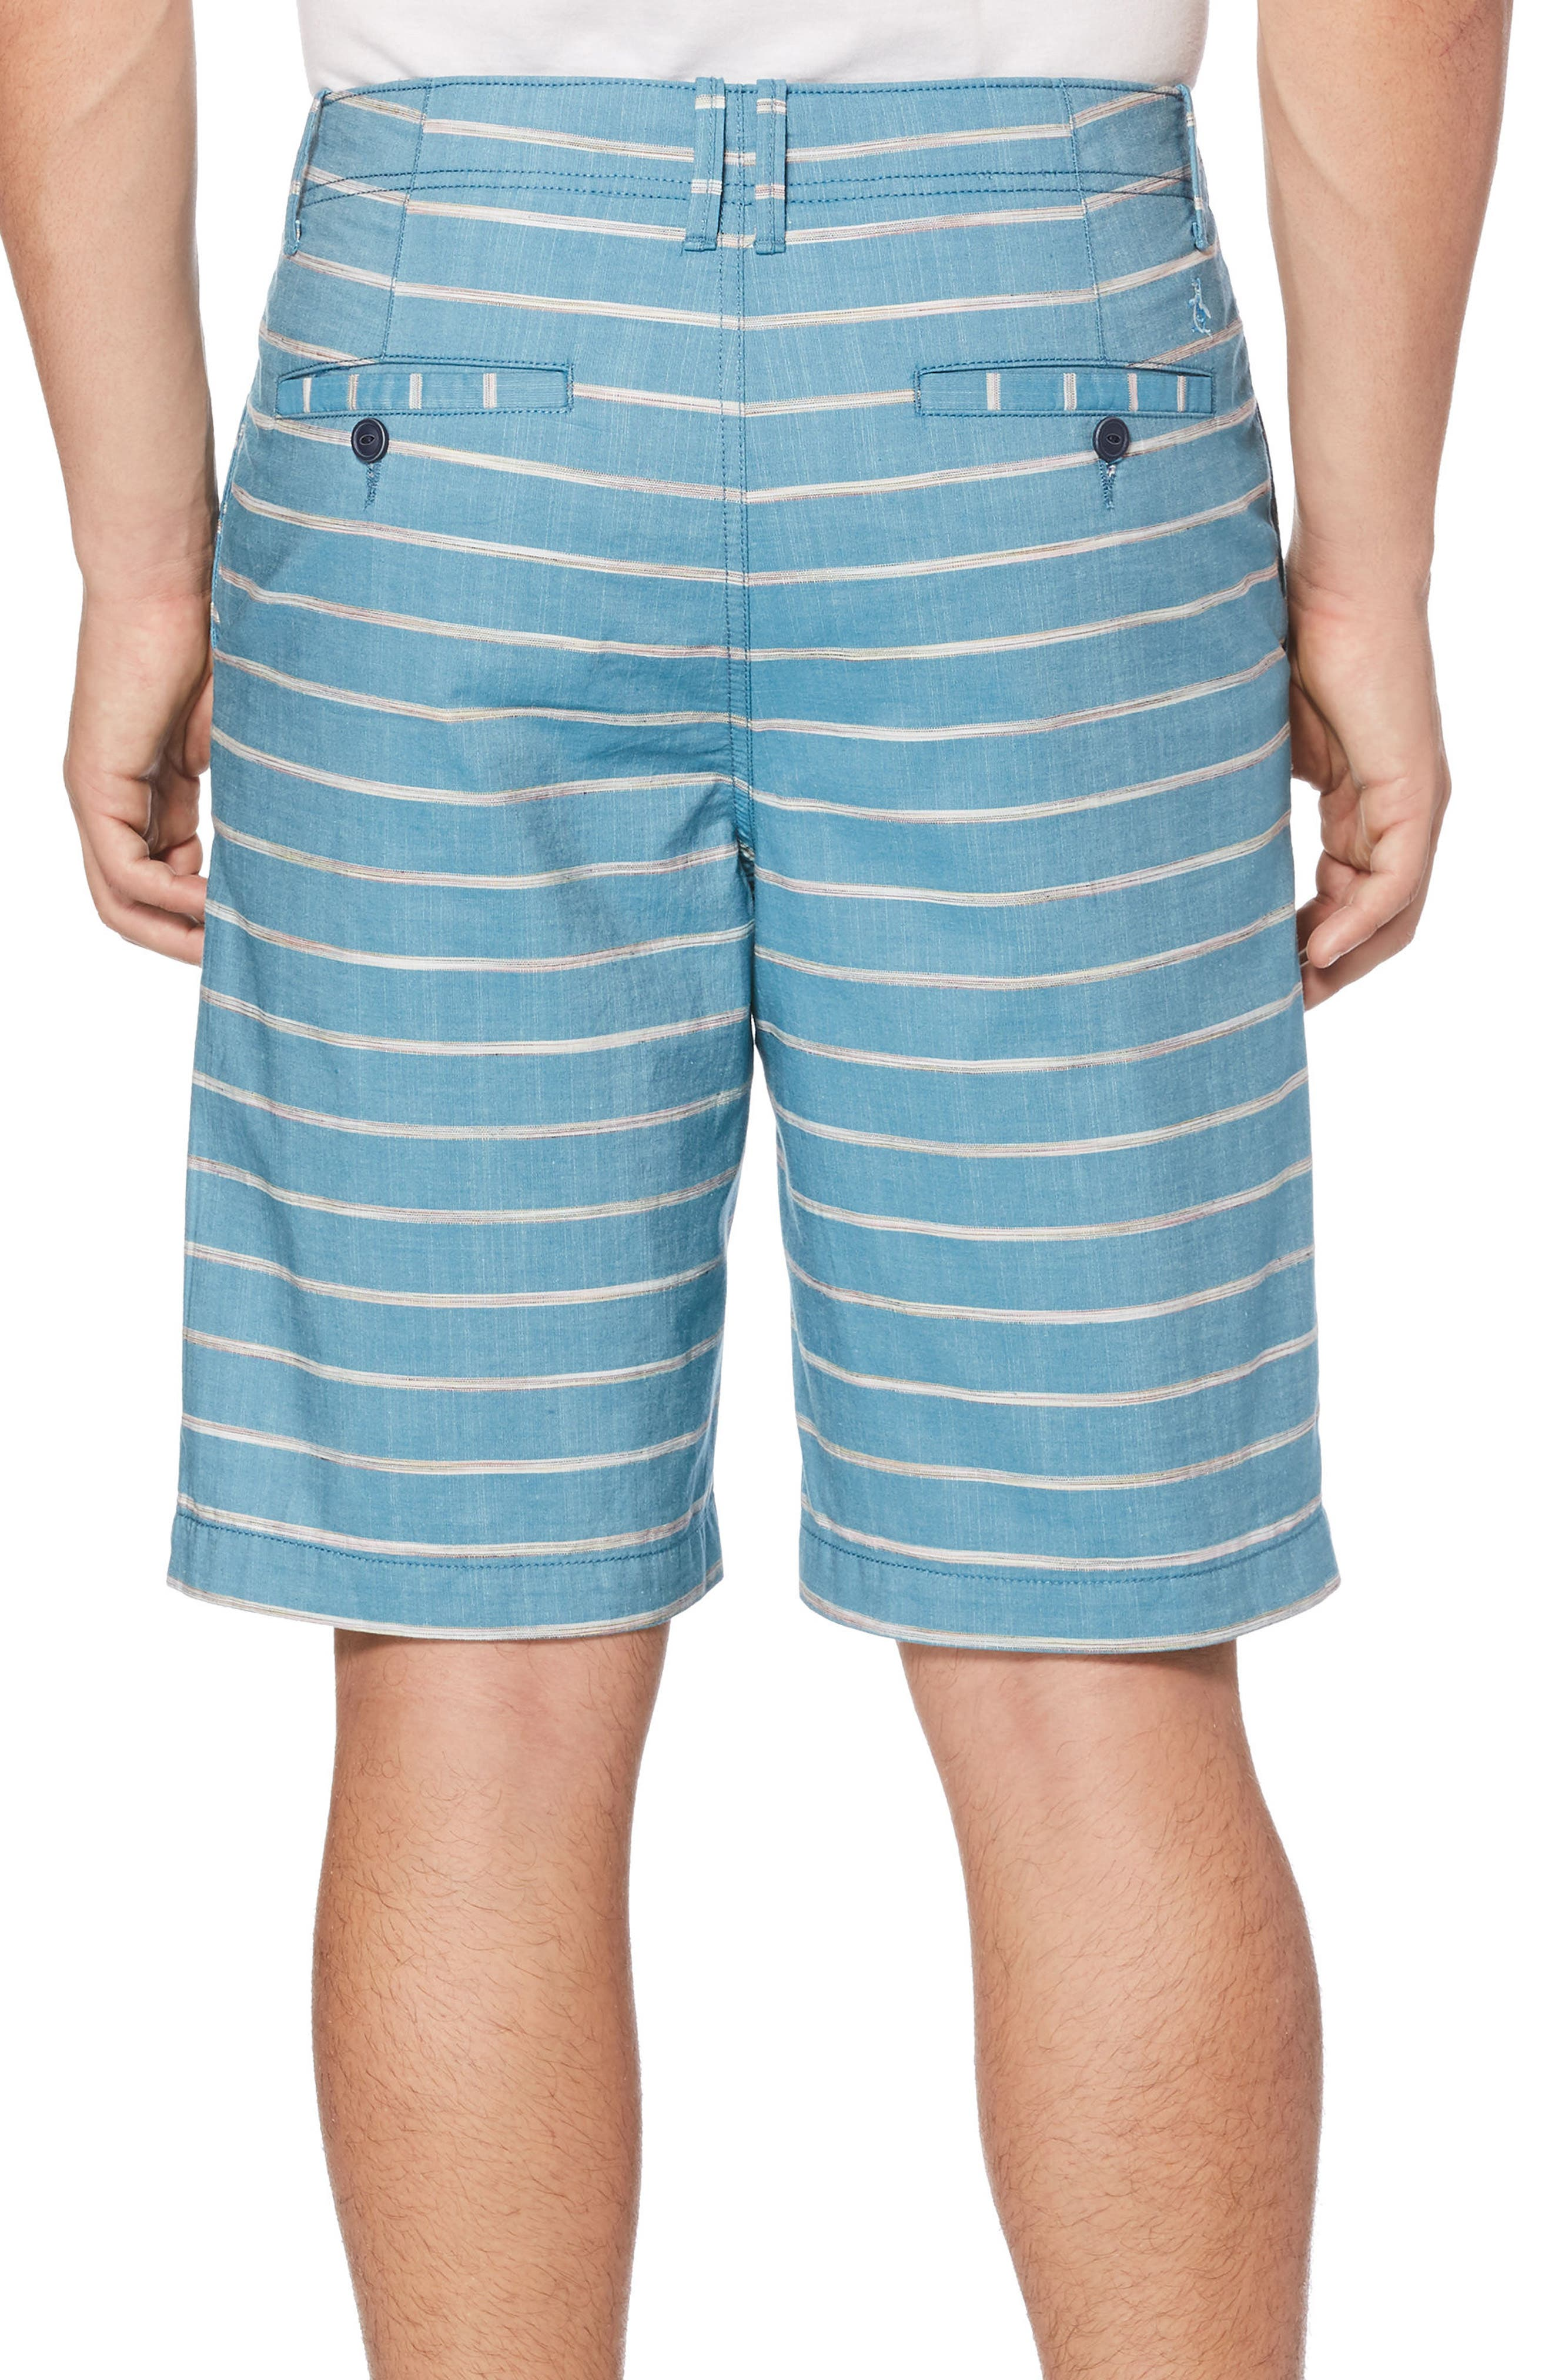 P55 Stripe Shorts,                             Alternate thumbnail 2, color,                             413